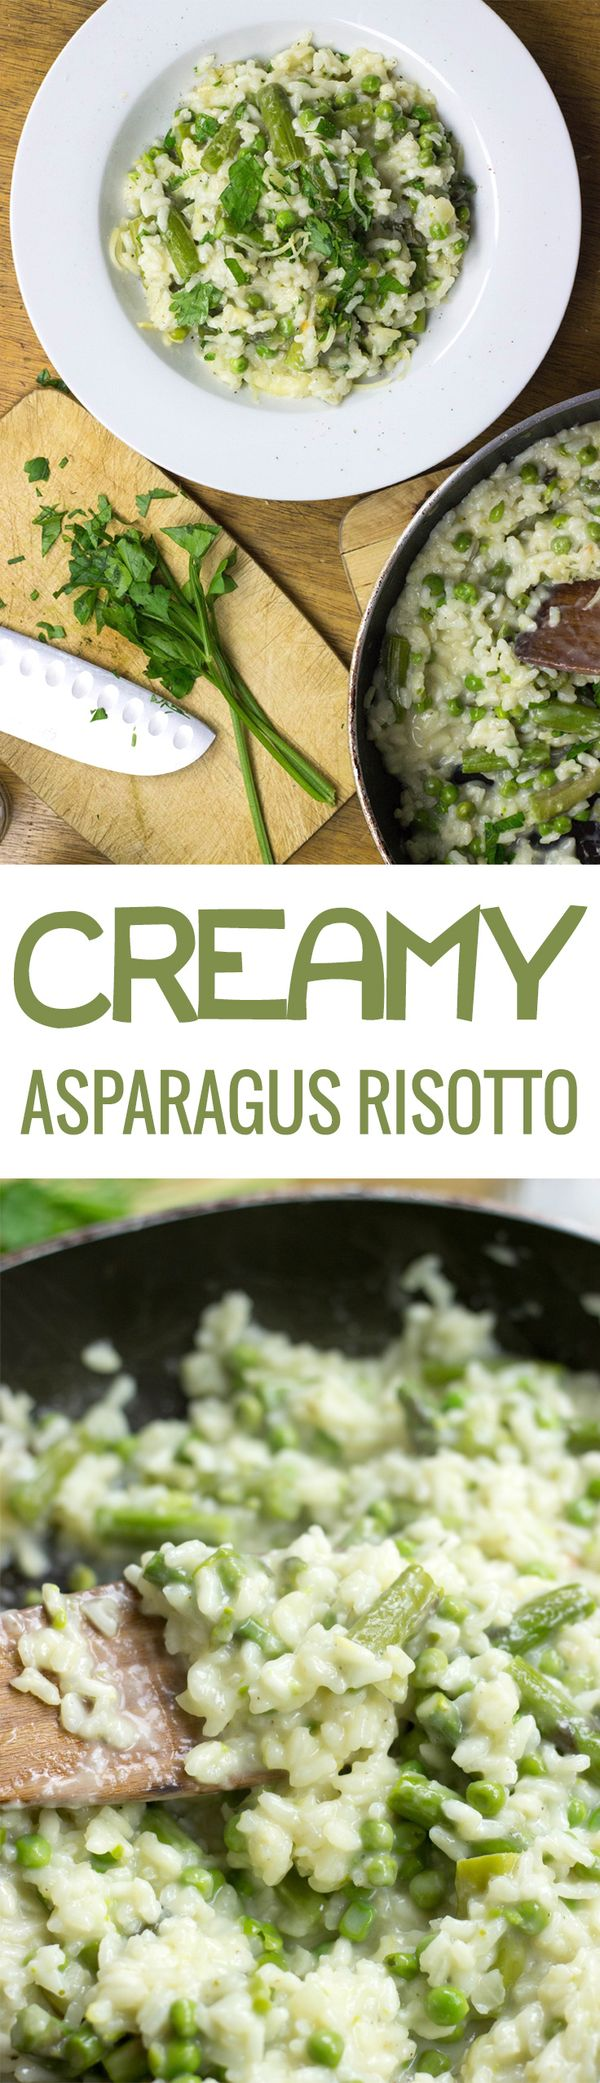 Creamy Asparagus Risotto. Quick to make, so satisfying and tasty to eat. We've also included the key surprisingly easy tips to getting the perfect risotto.| hurrythefoodup.com